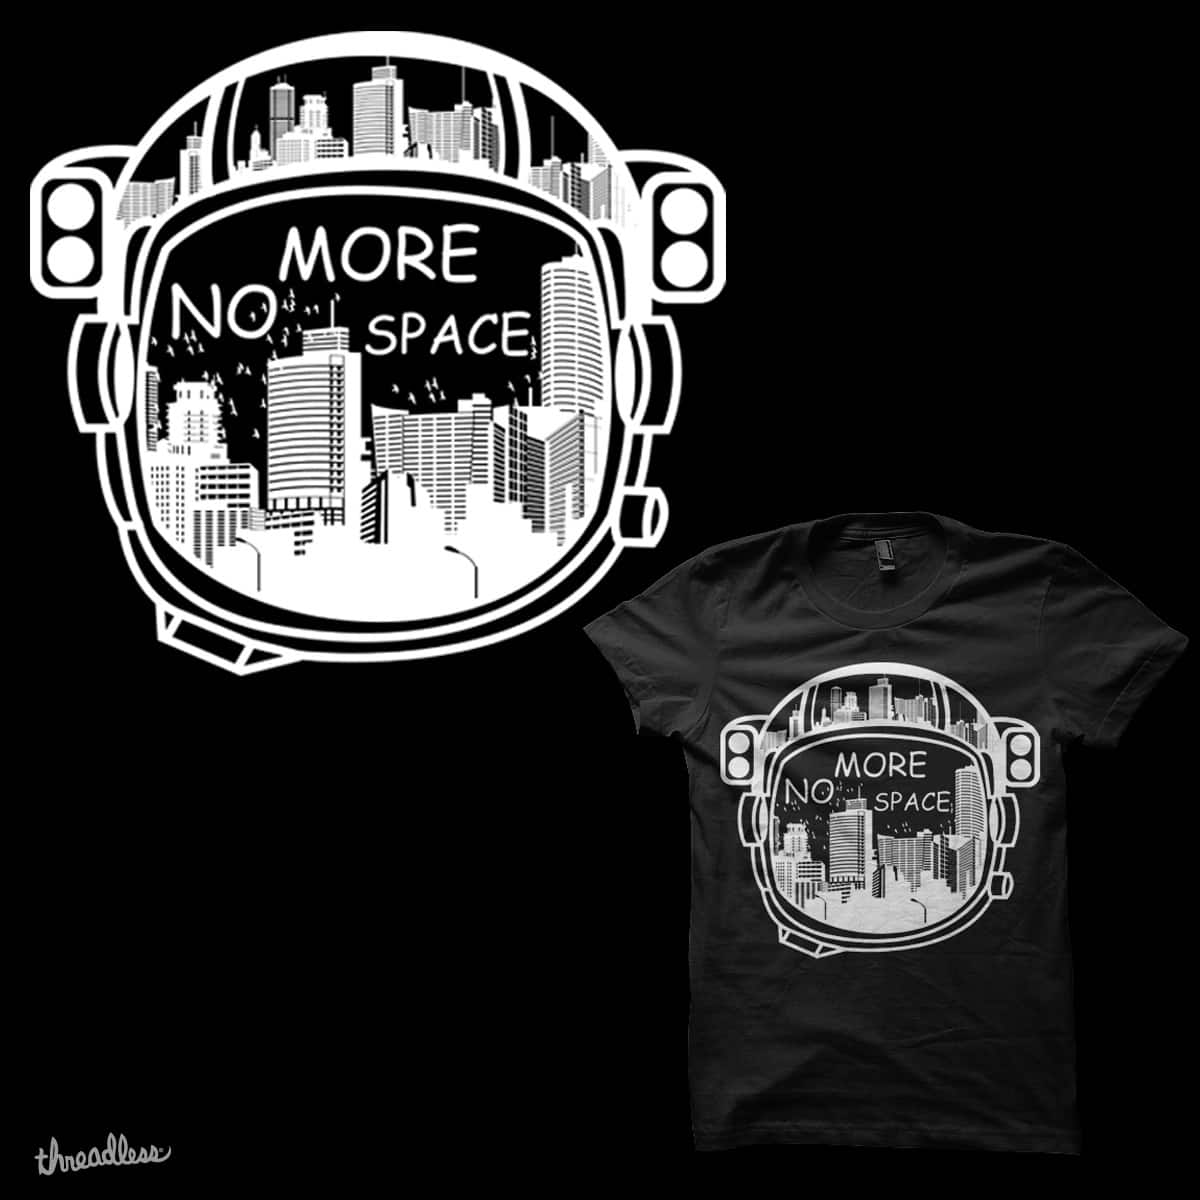 no more space  by jhun213 on Threadless